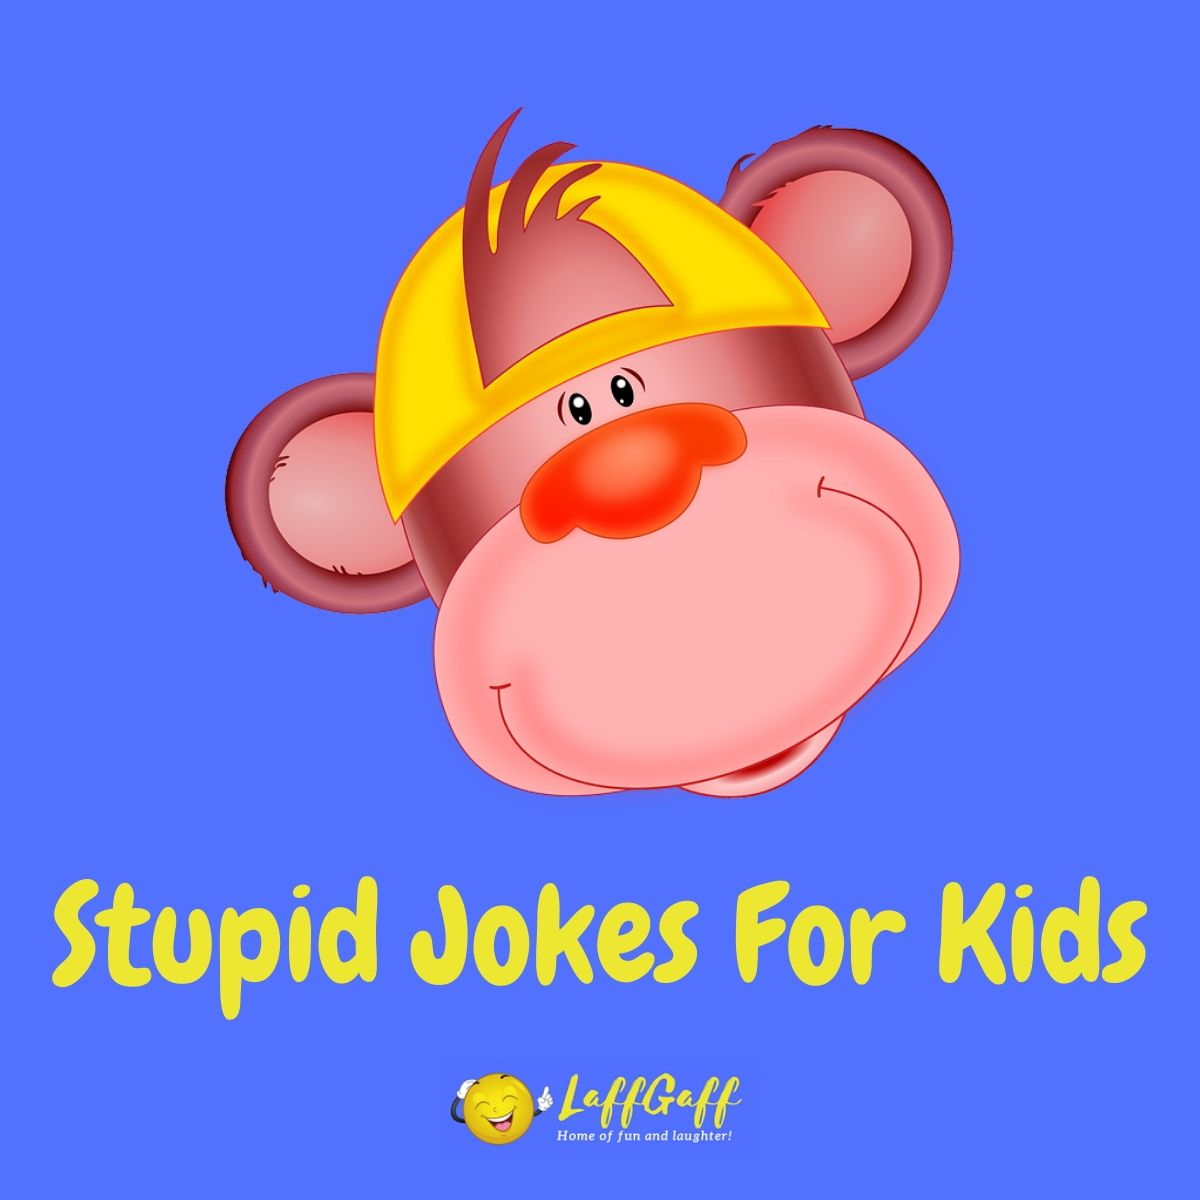 Featured image for a page of stupid jokes for kids.